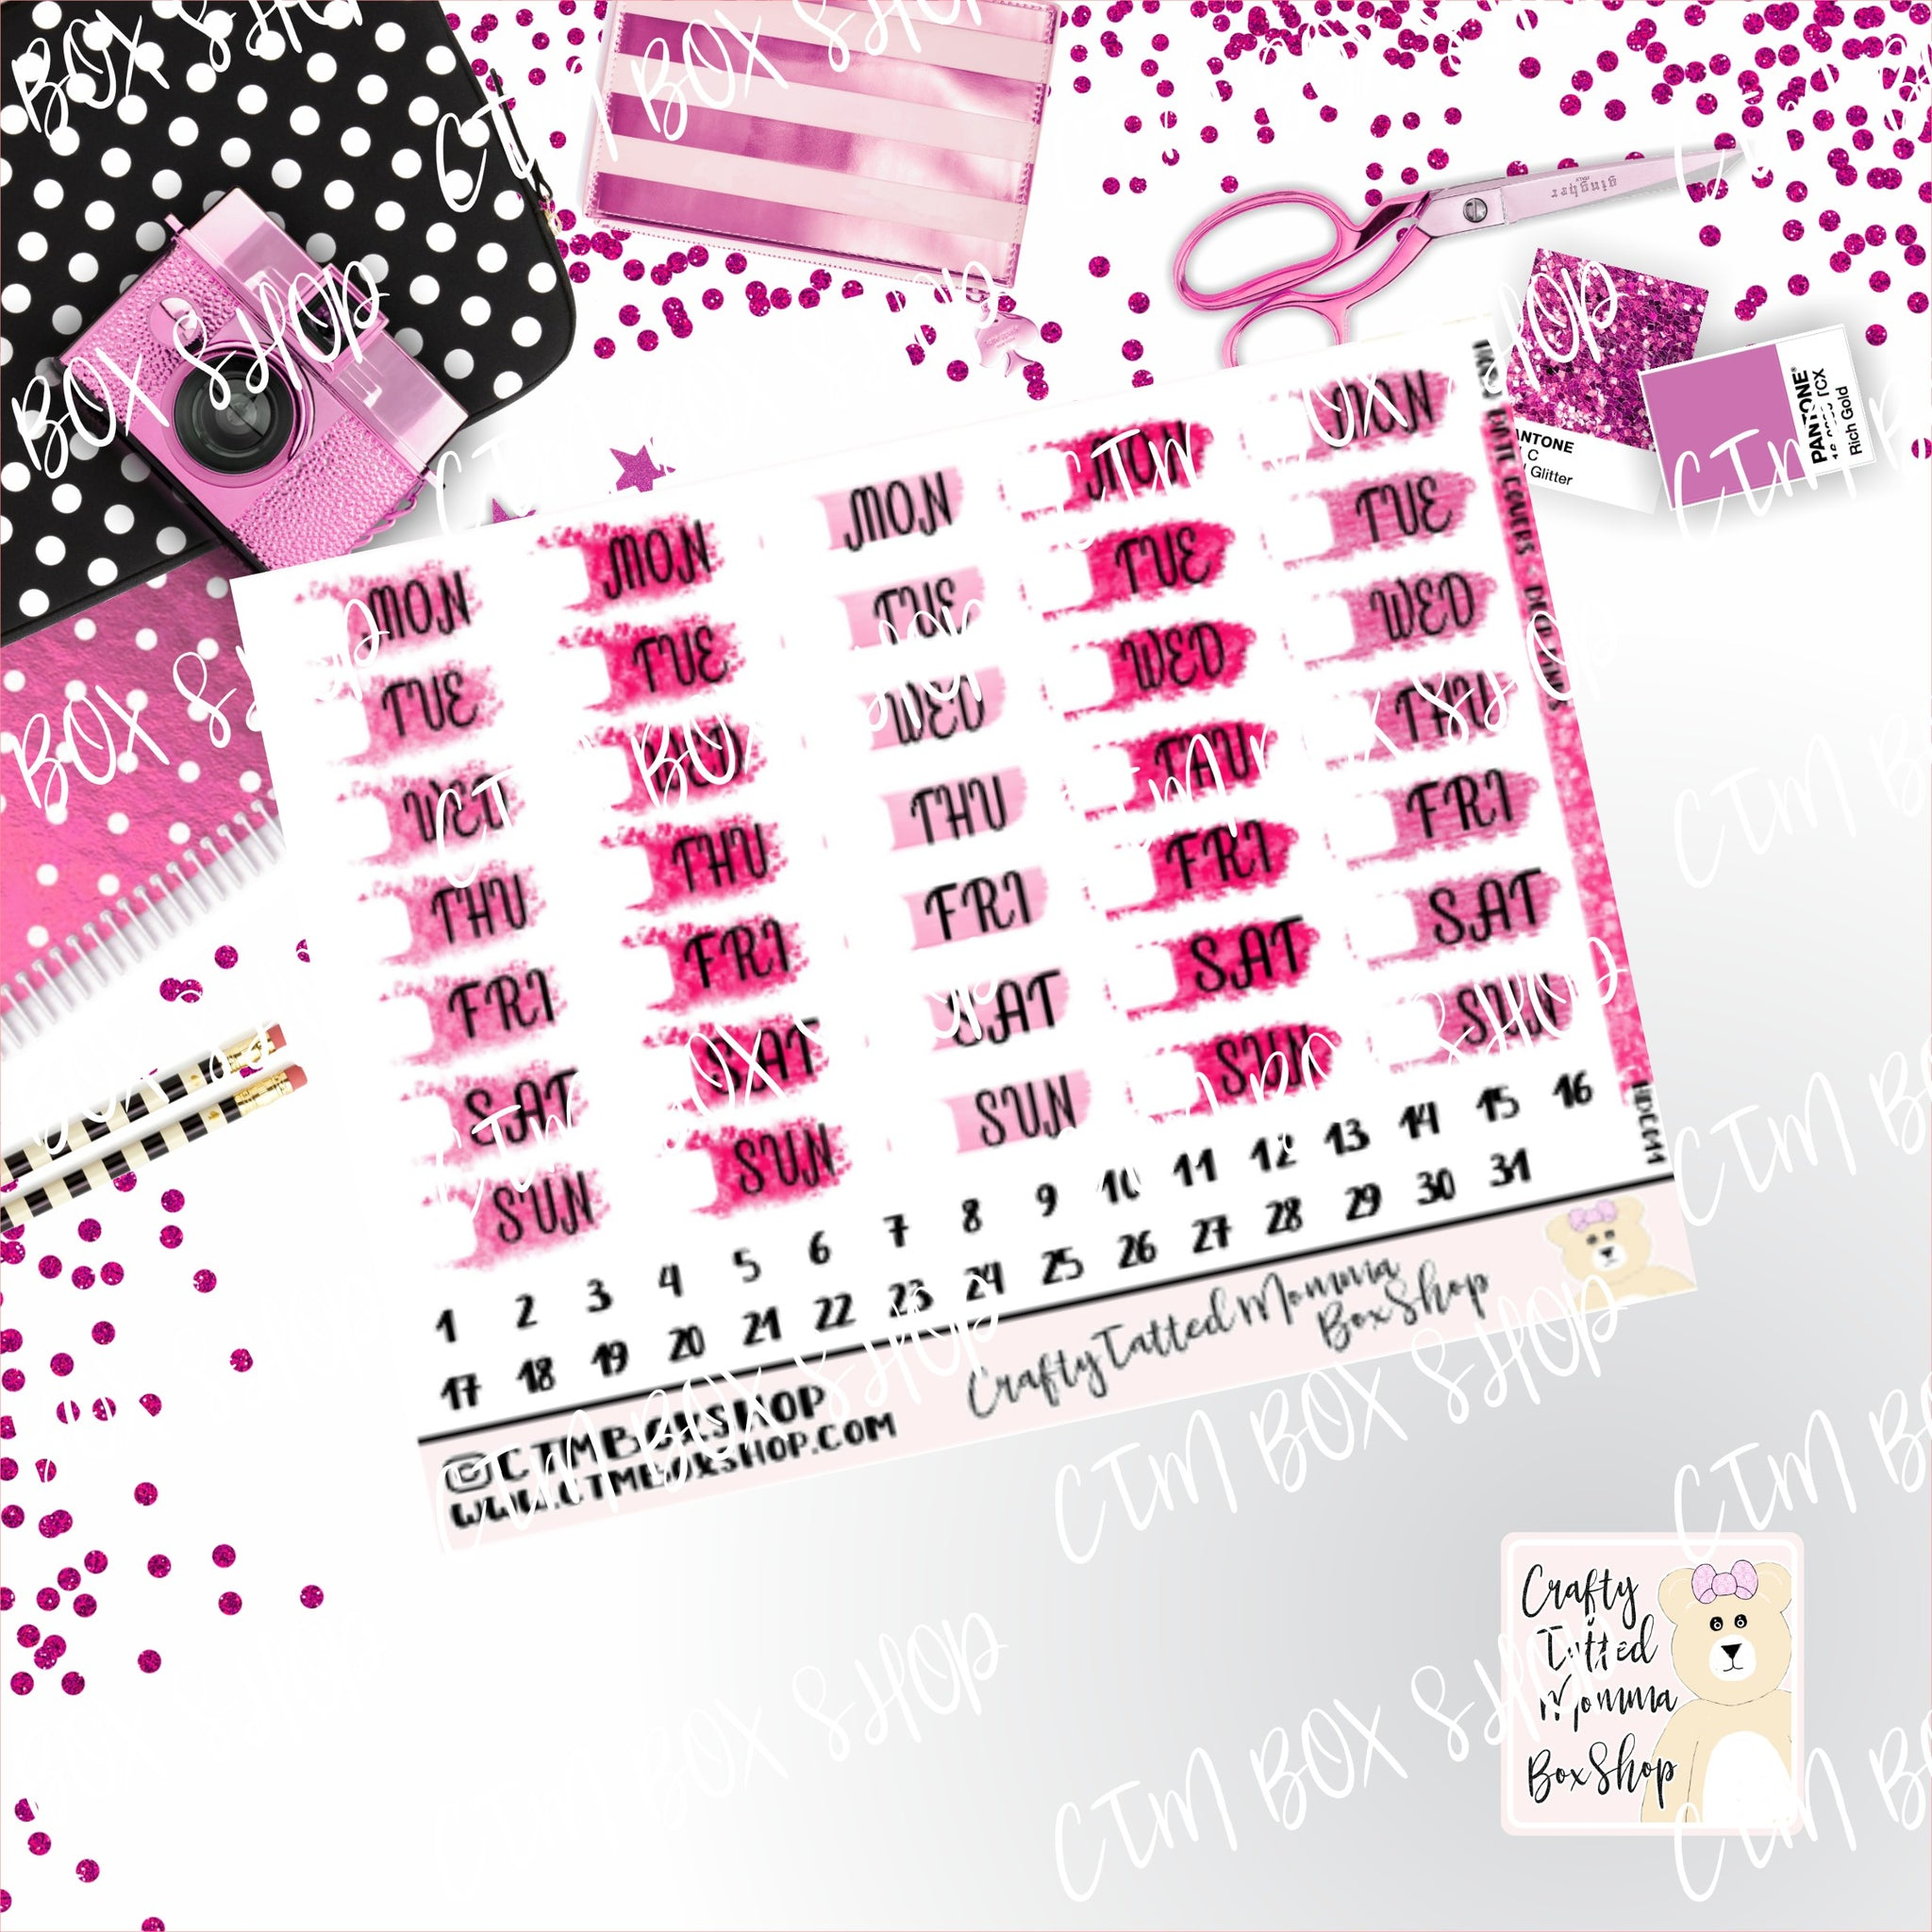 Deep Pink  Date Covers Stickers  Planner Stickers   Hobonichi  Techno Weeks   Stickers  Date Covers  Days of the Week